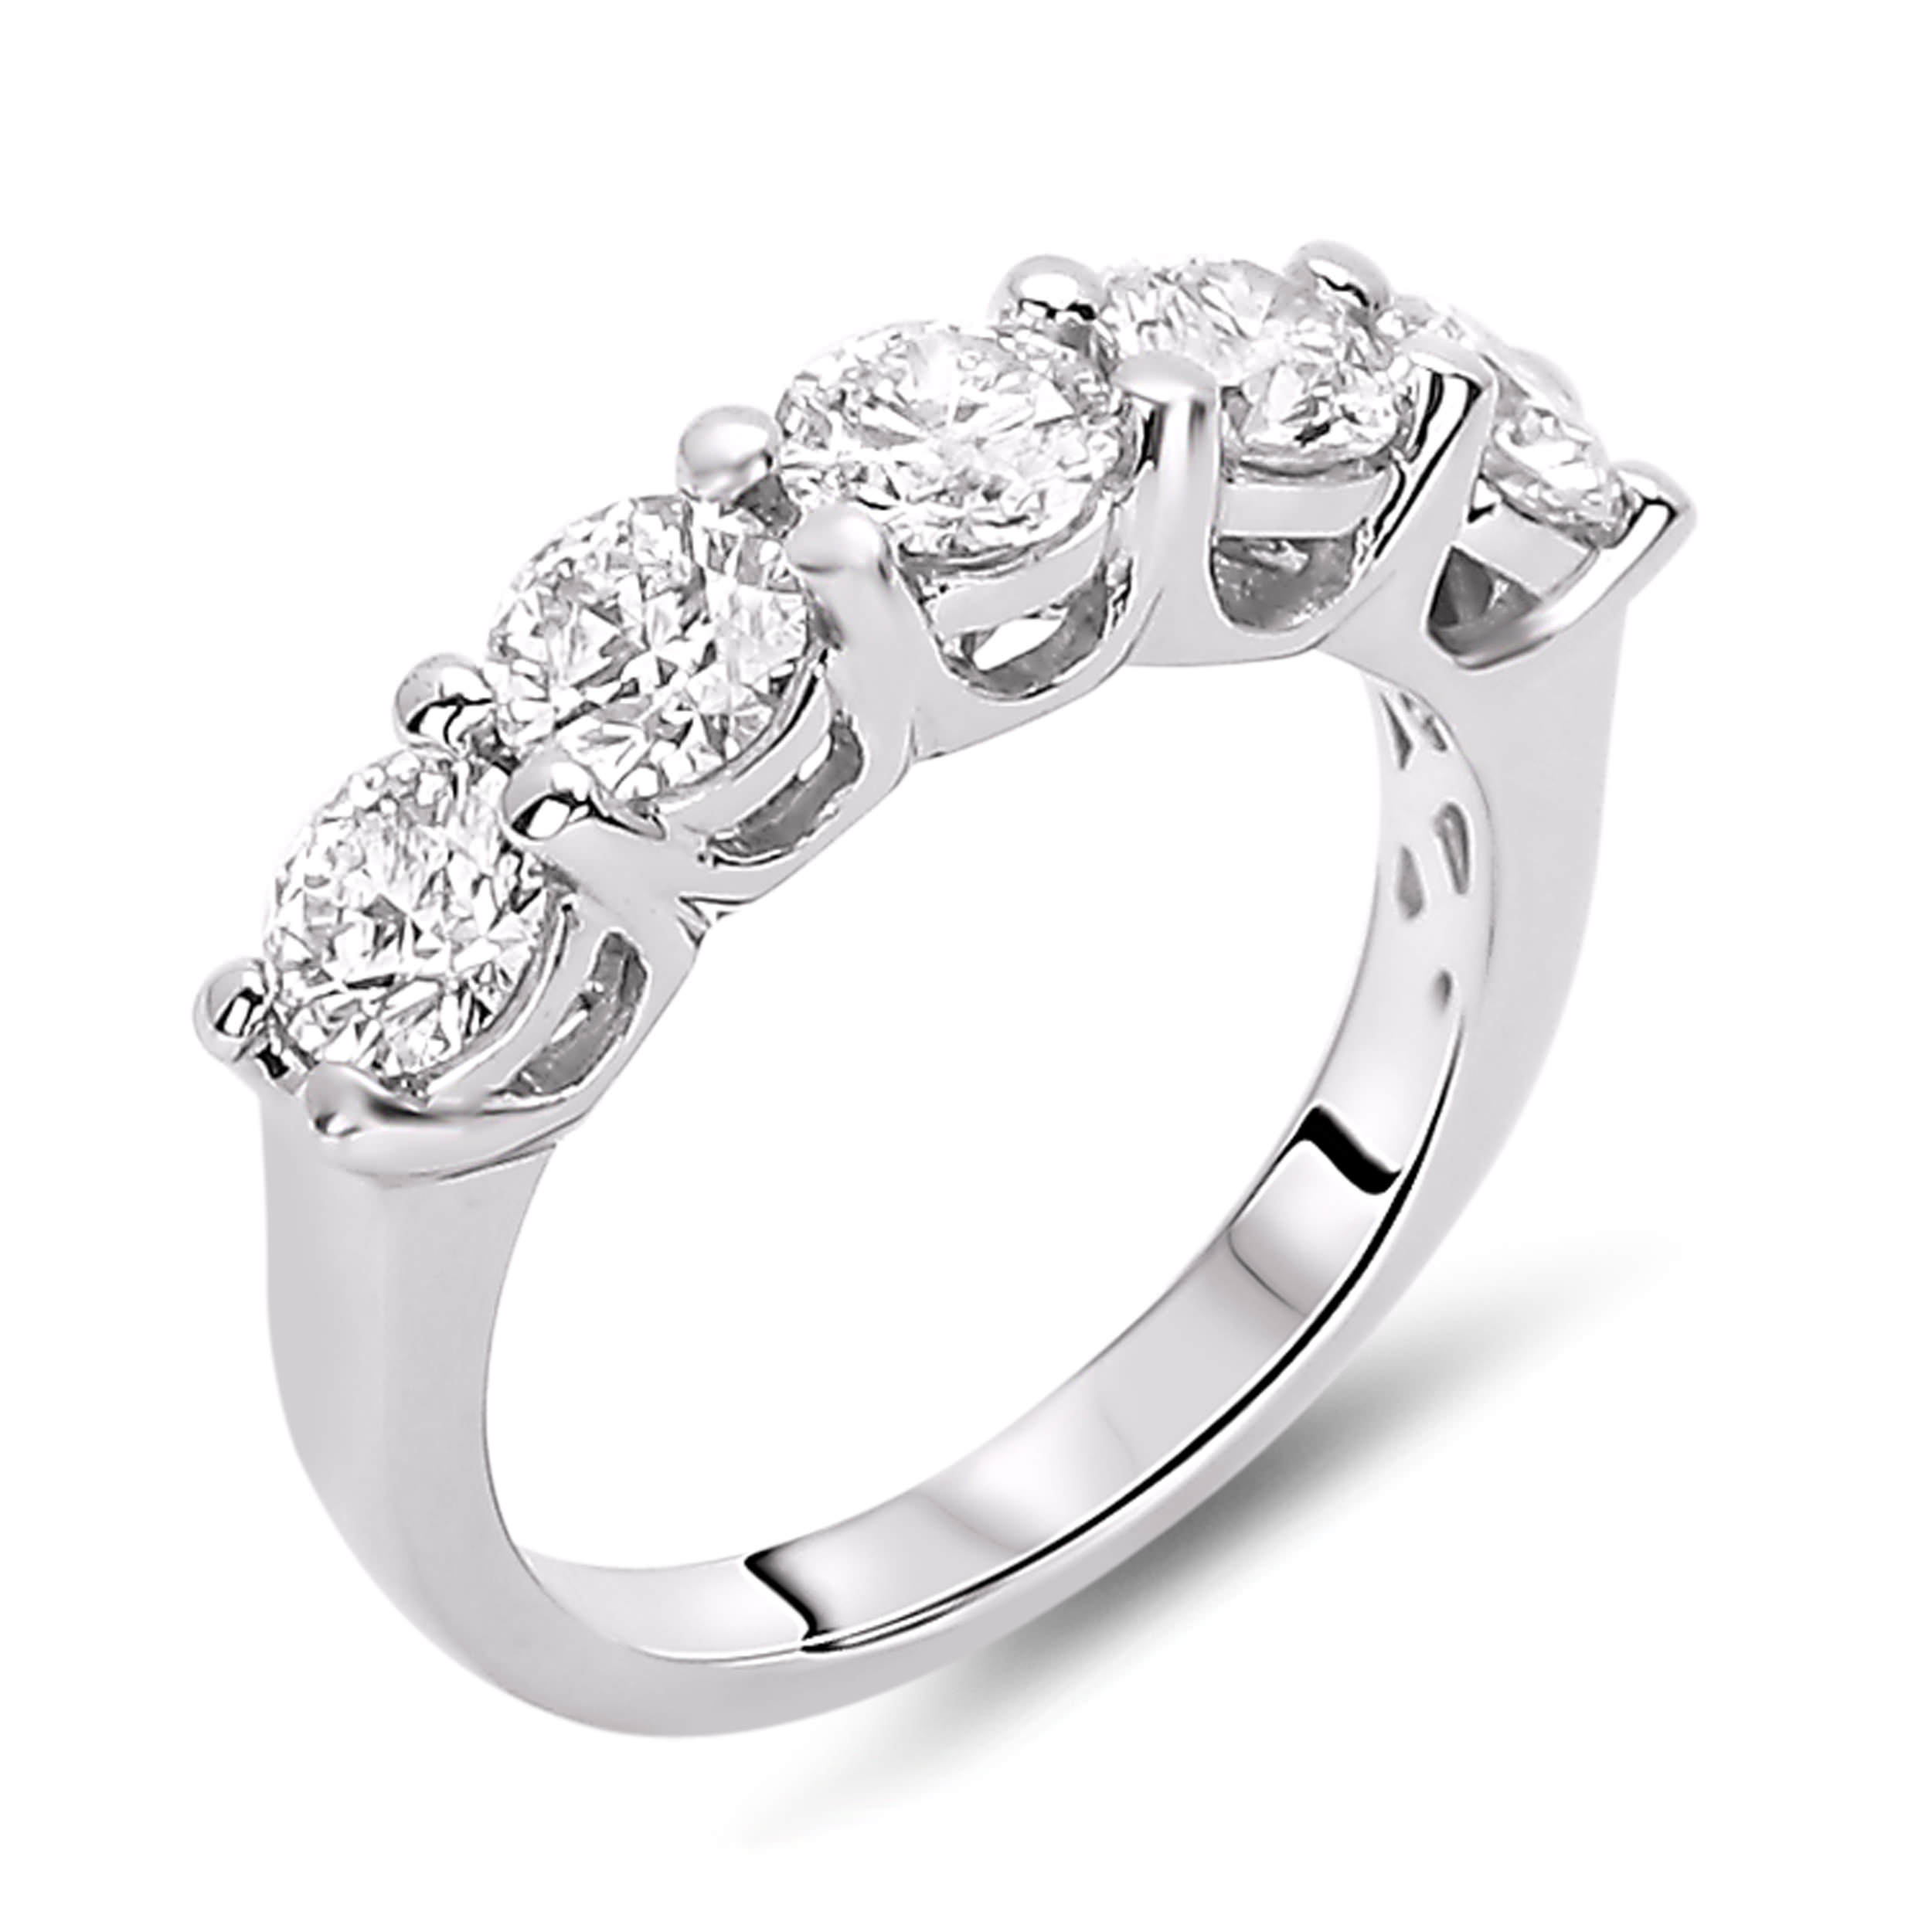 jewellery anniversary products and rings diamond wedding image ring